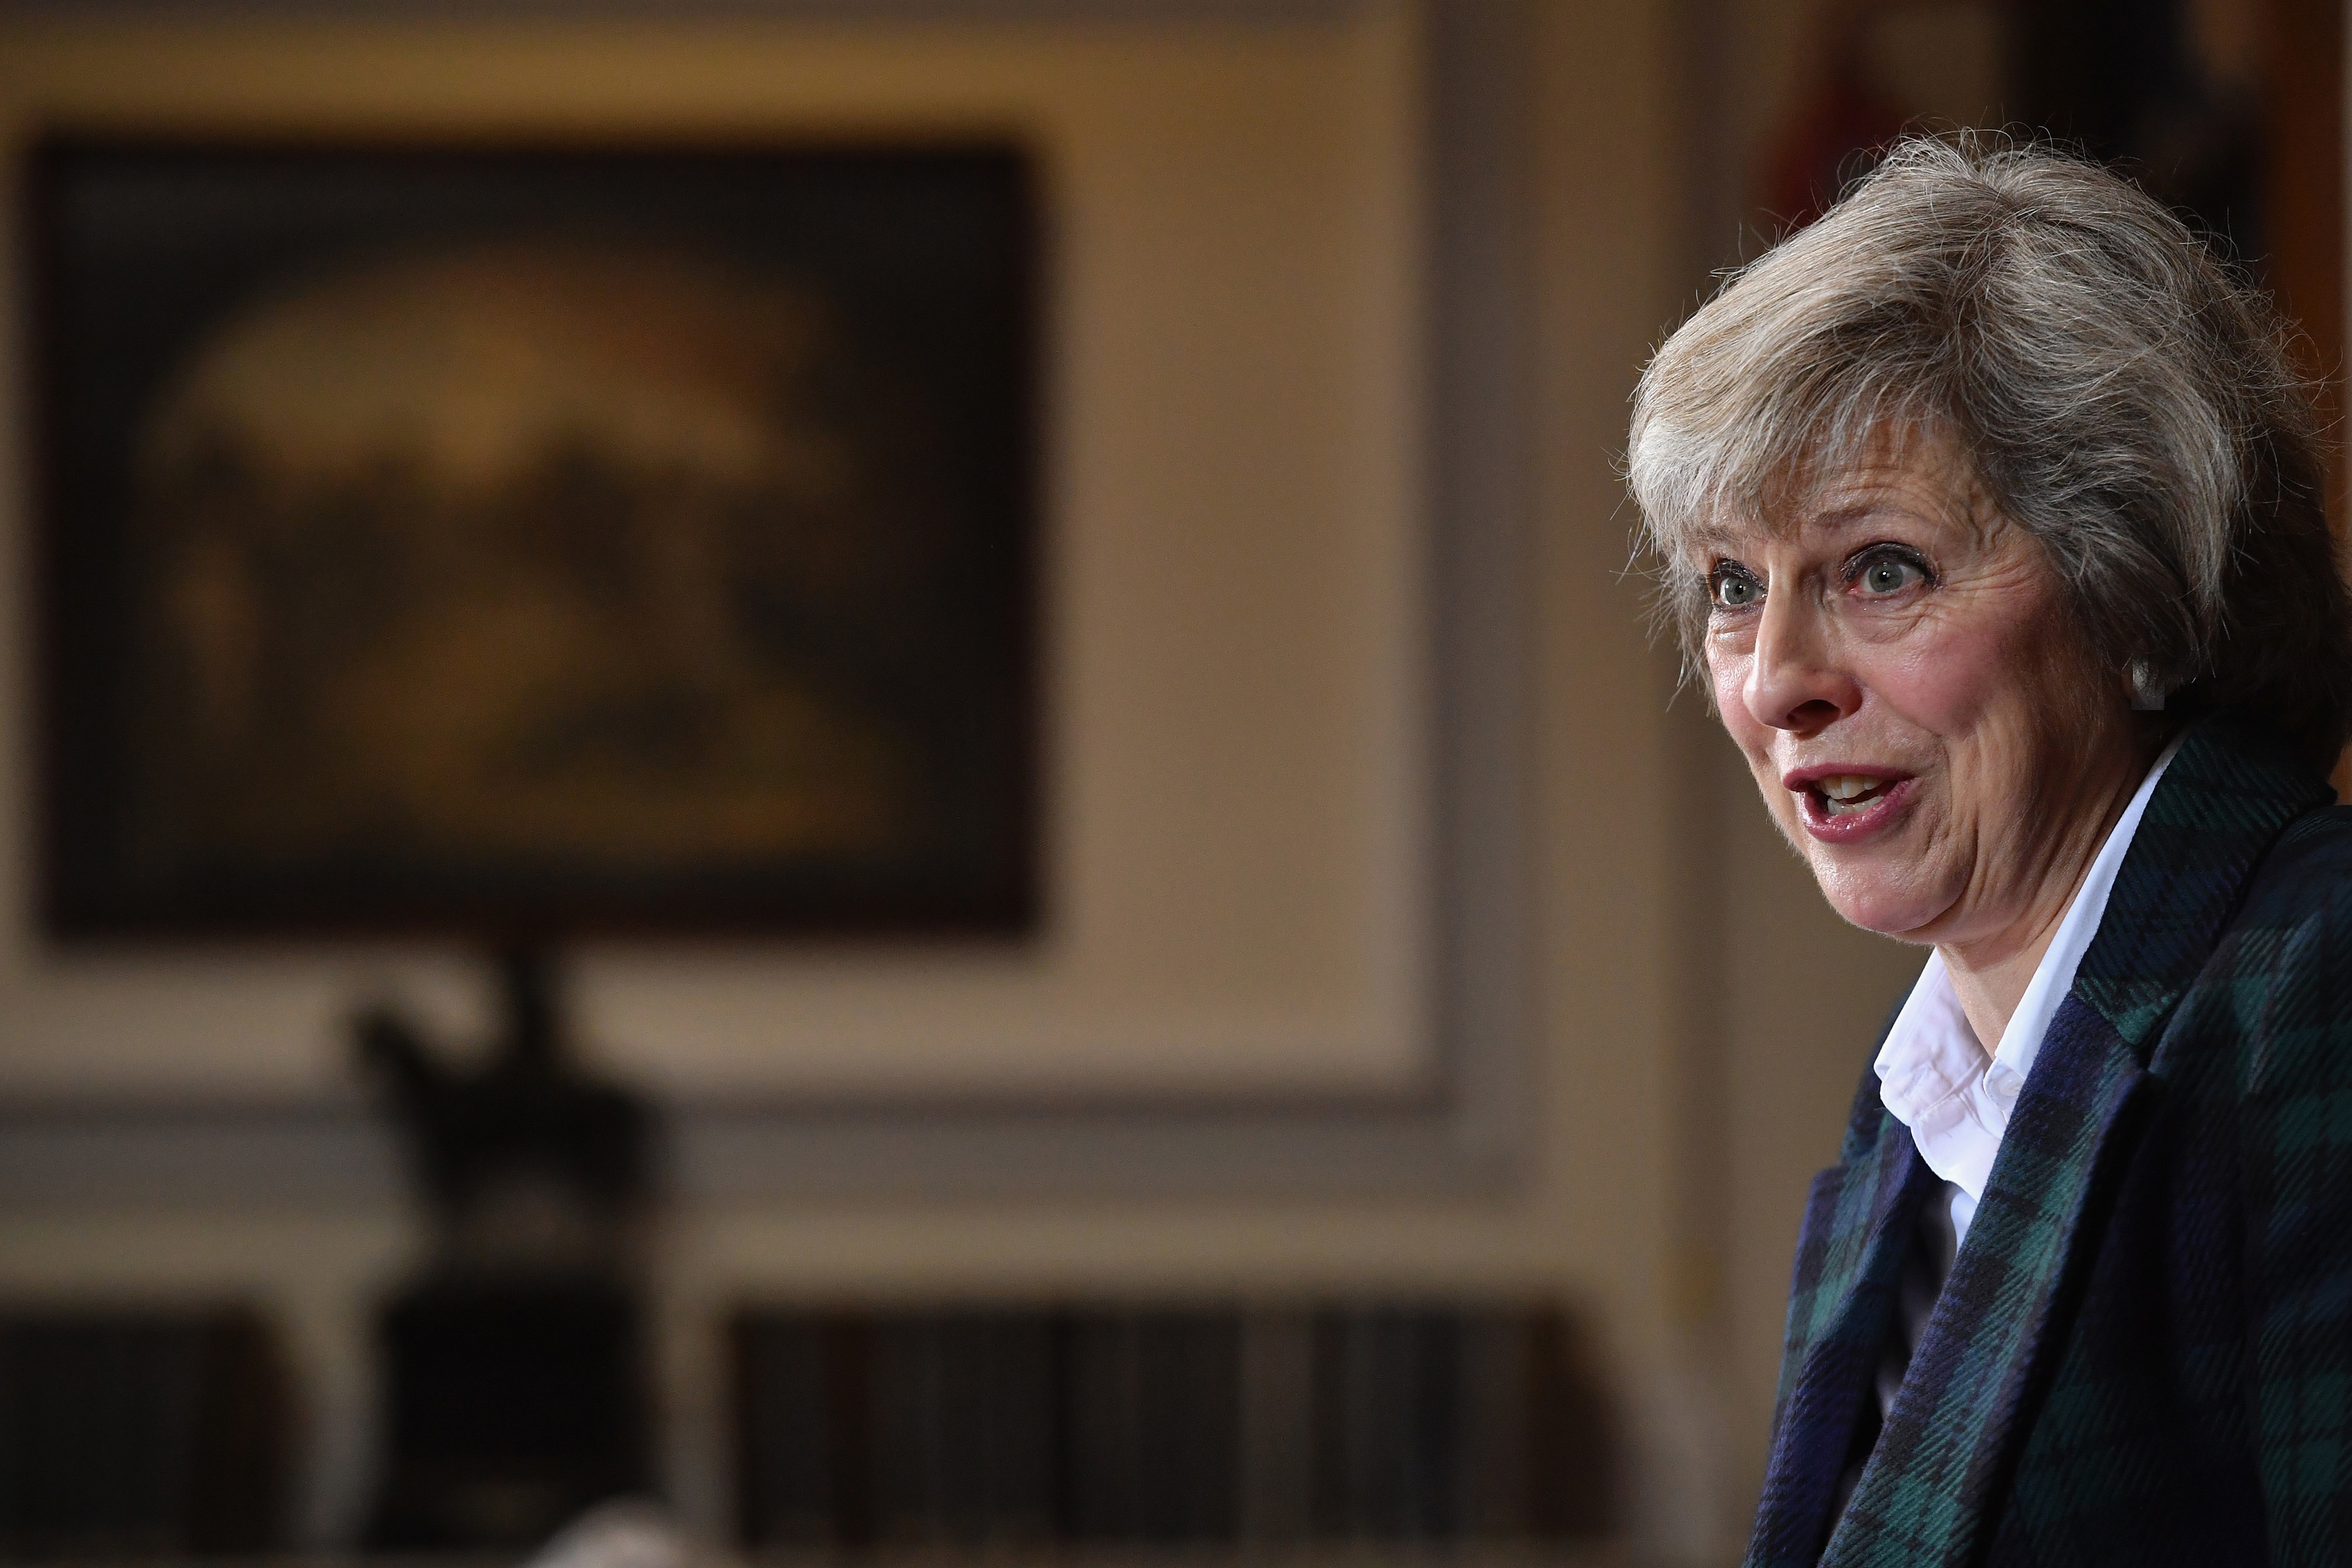 Home Secretary Theresa May, launches her bid for the Conservative Party leadership.